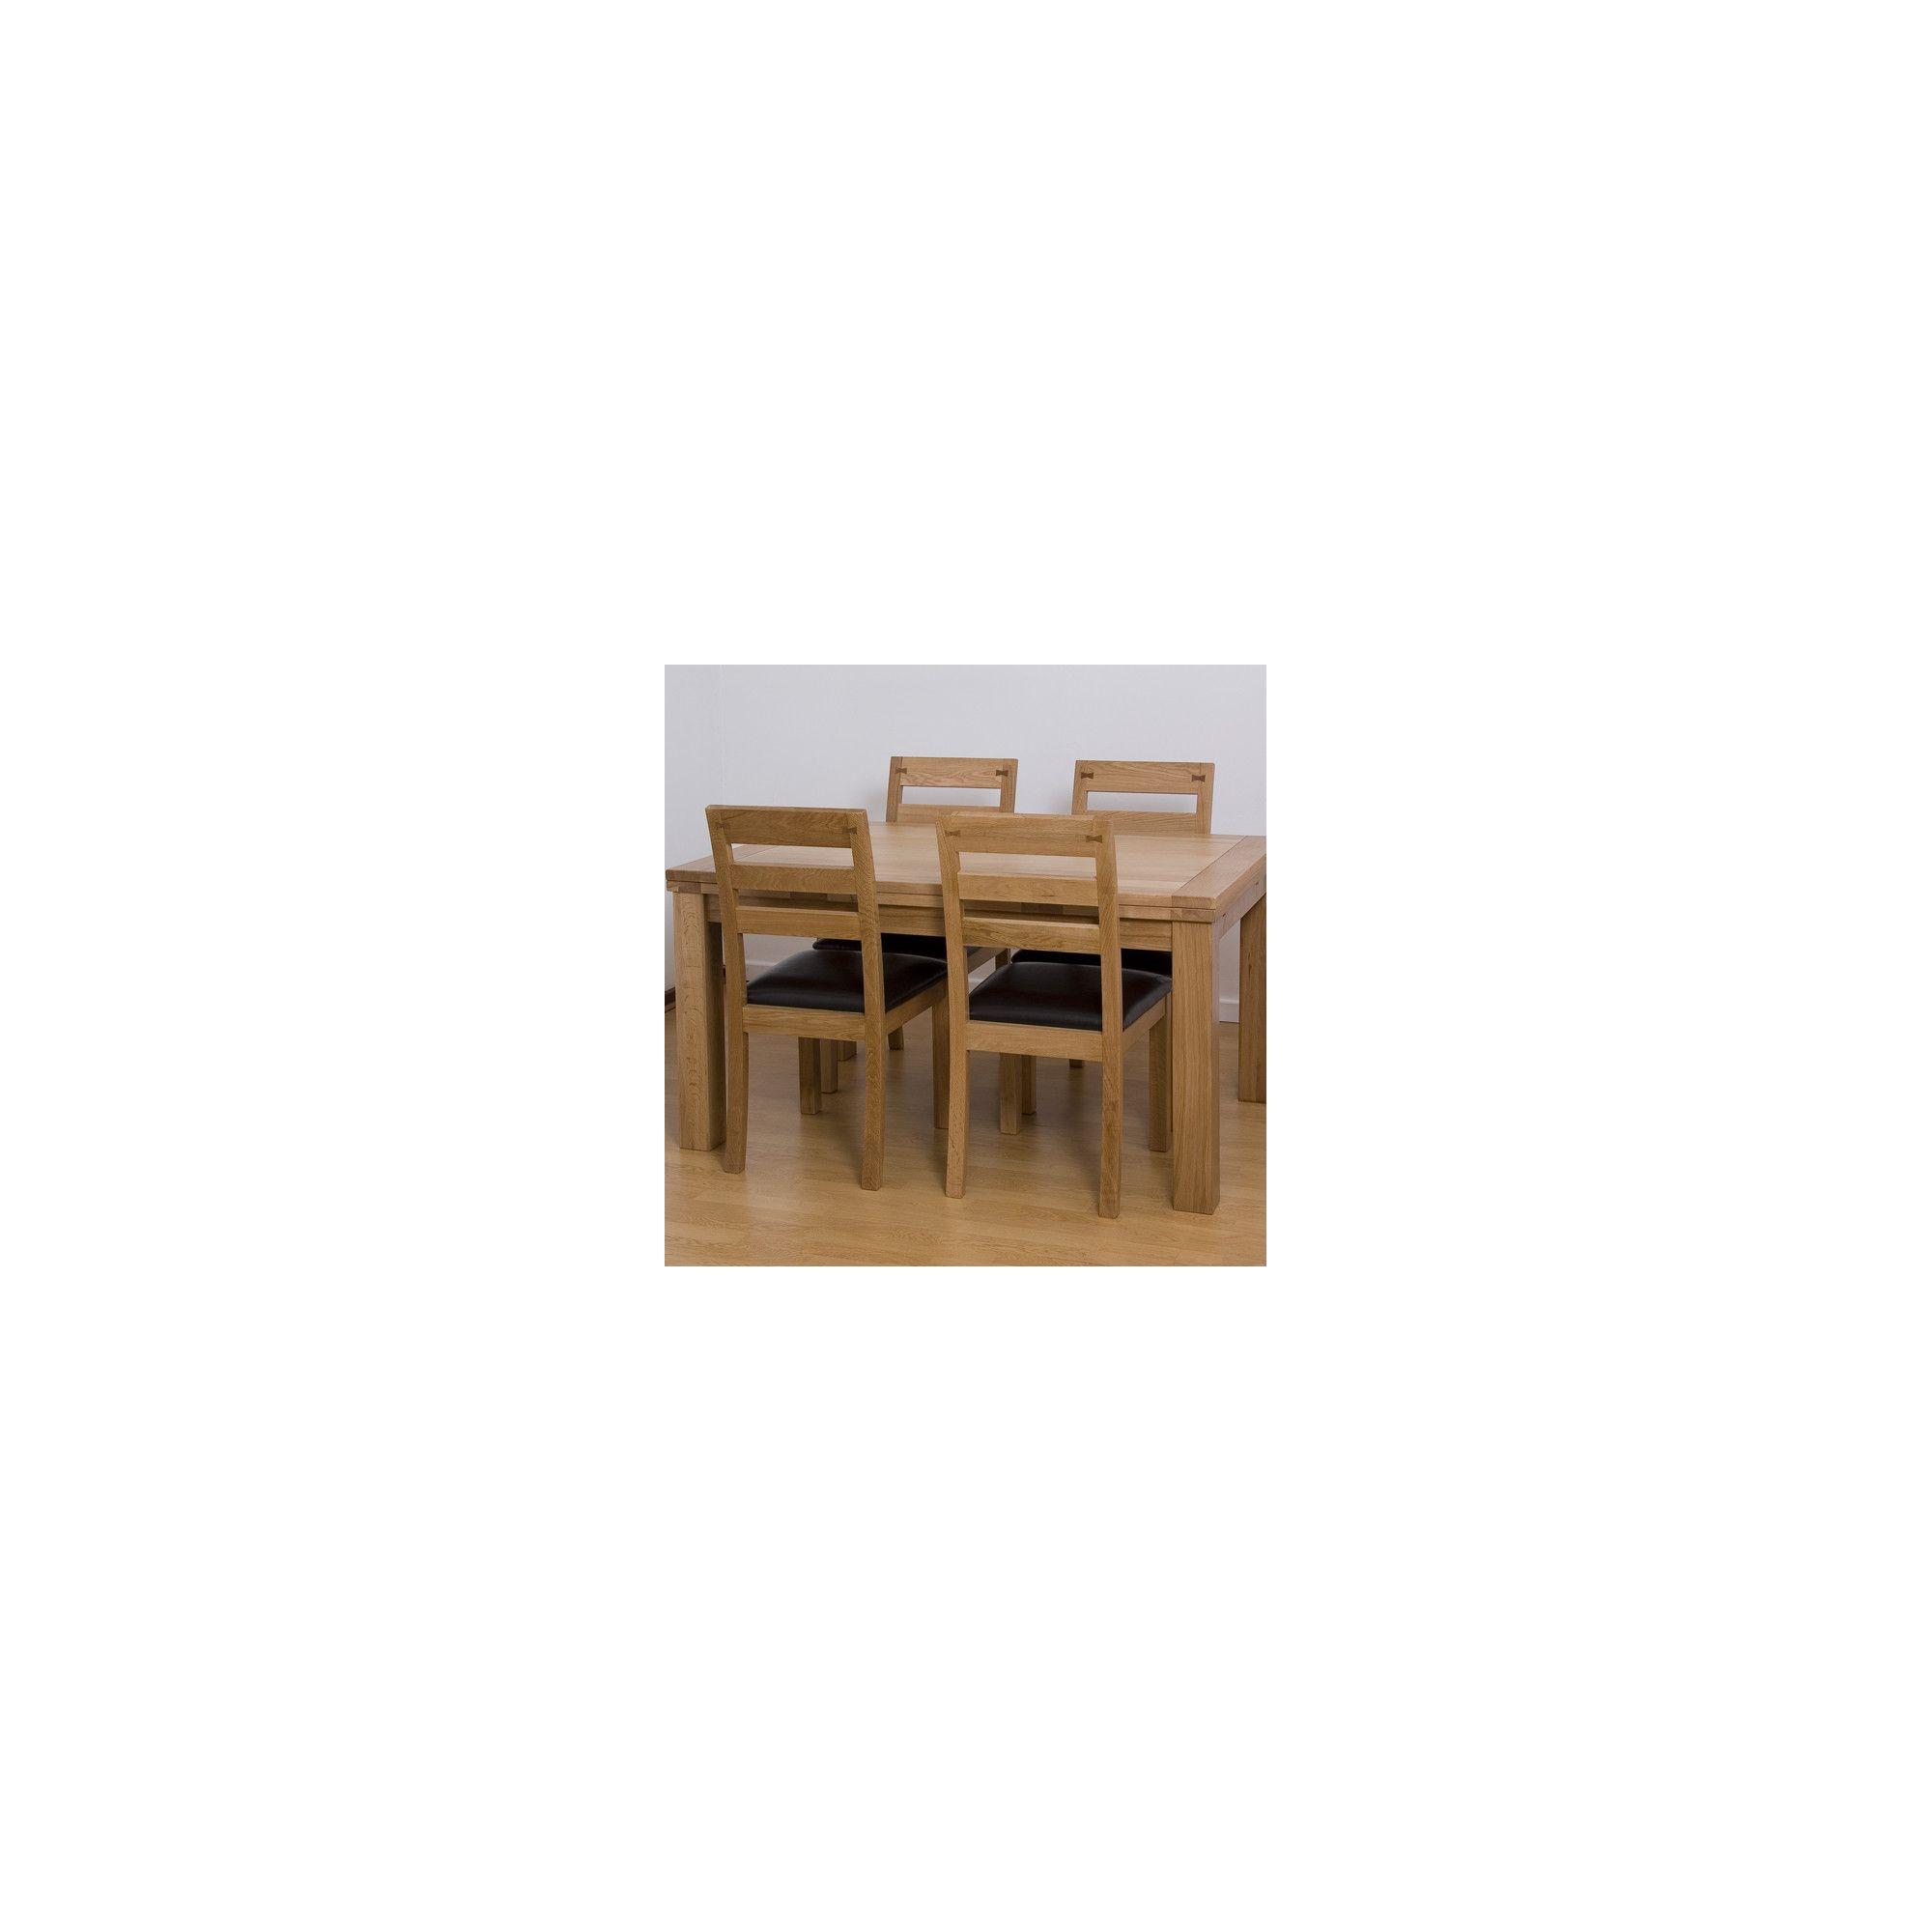 G&P Furniture 5 Piece Extending Oak Dining Set - 76.2cm H x 140cm - 230cm W x 90cm D at Tesco Direct